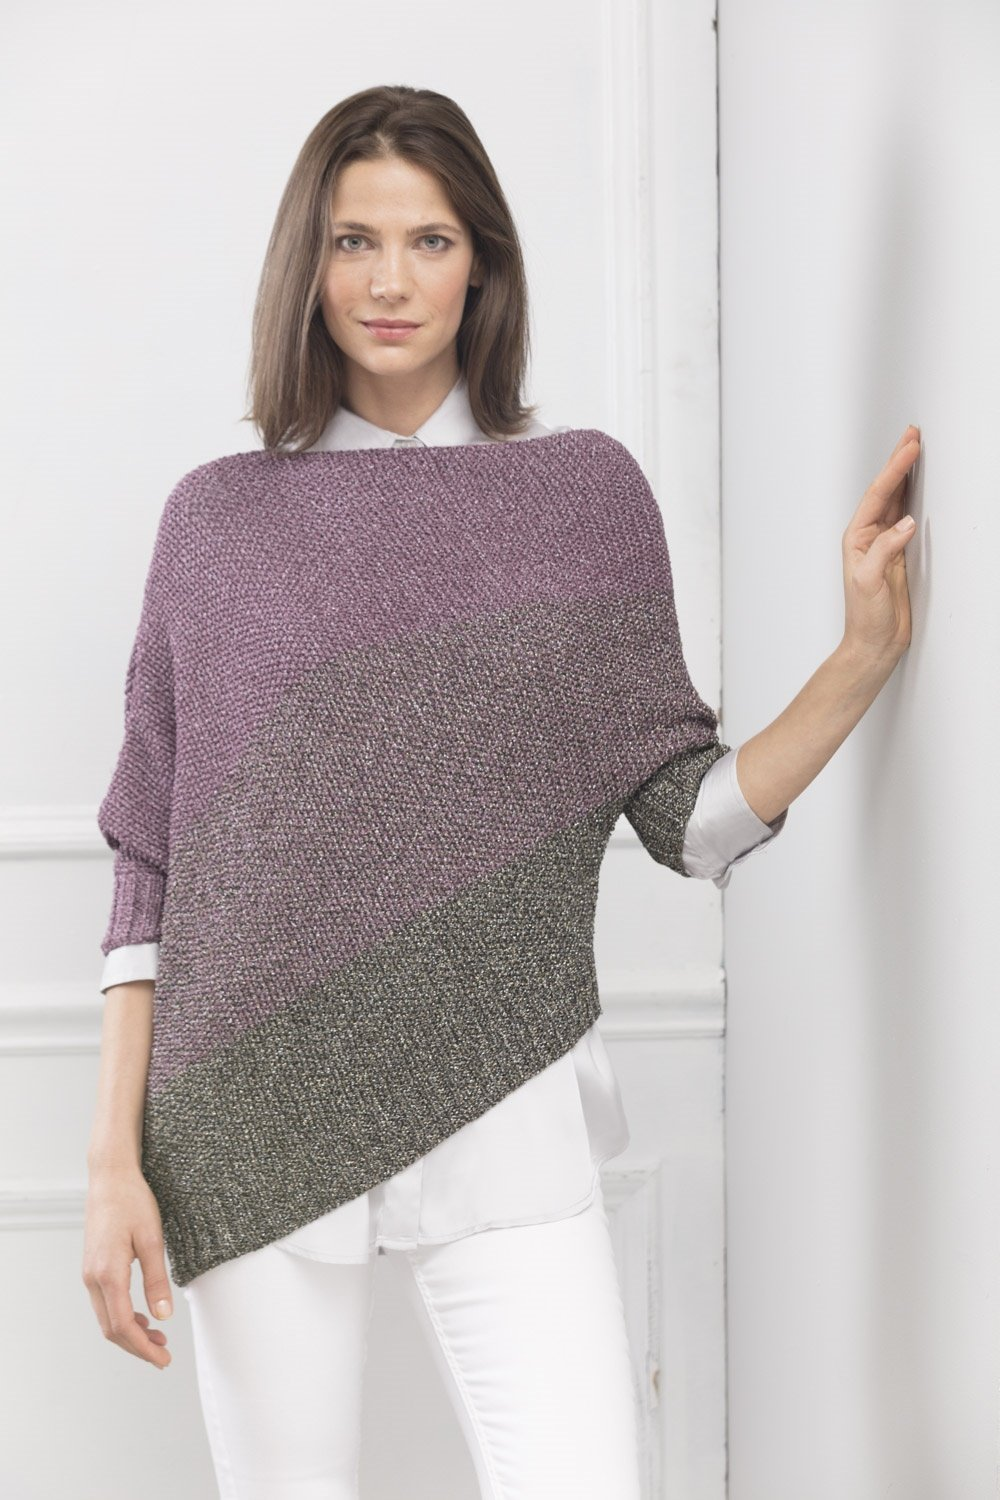 Majestic Asymmetrical Pullover Pattern